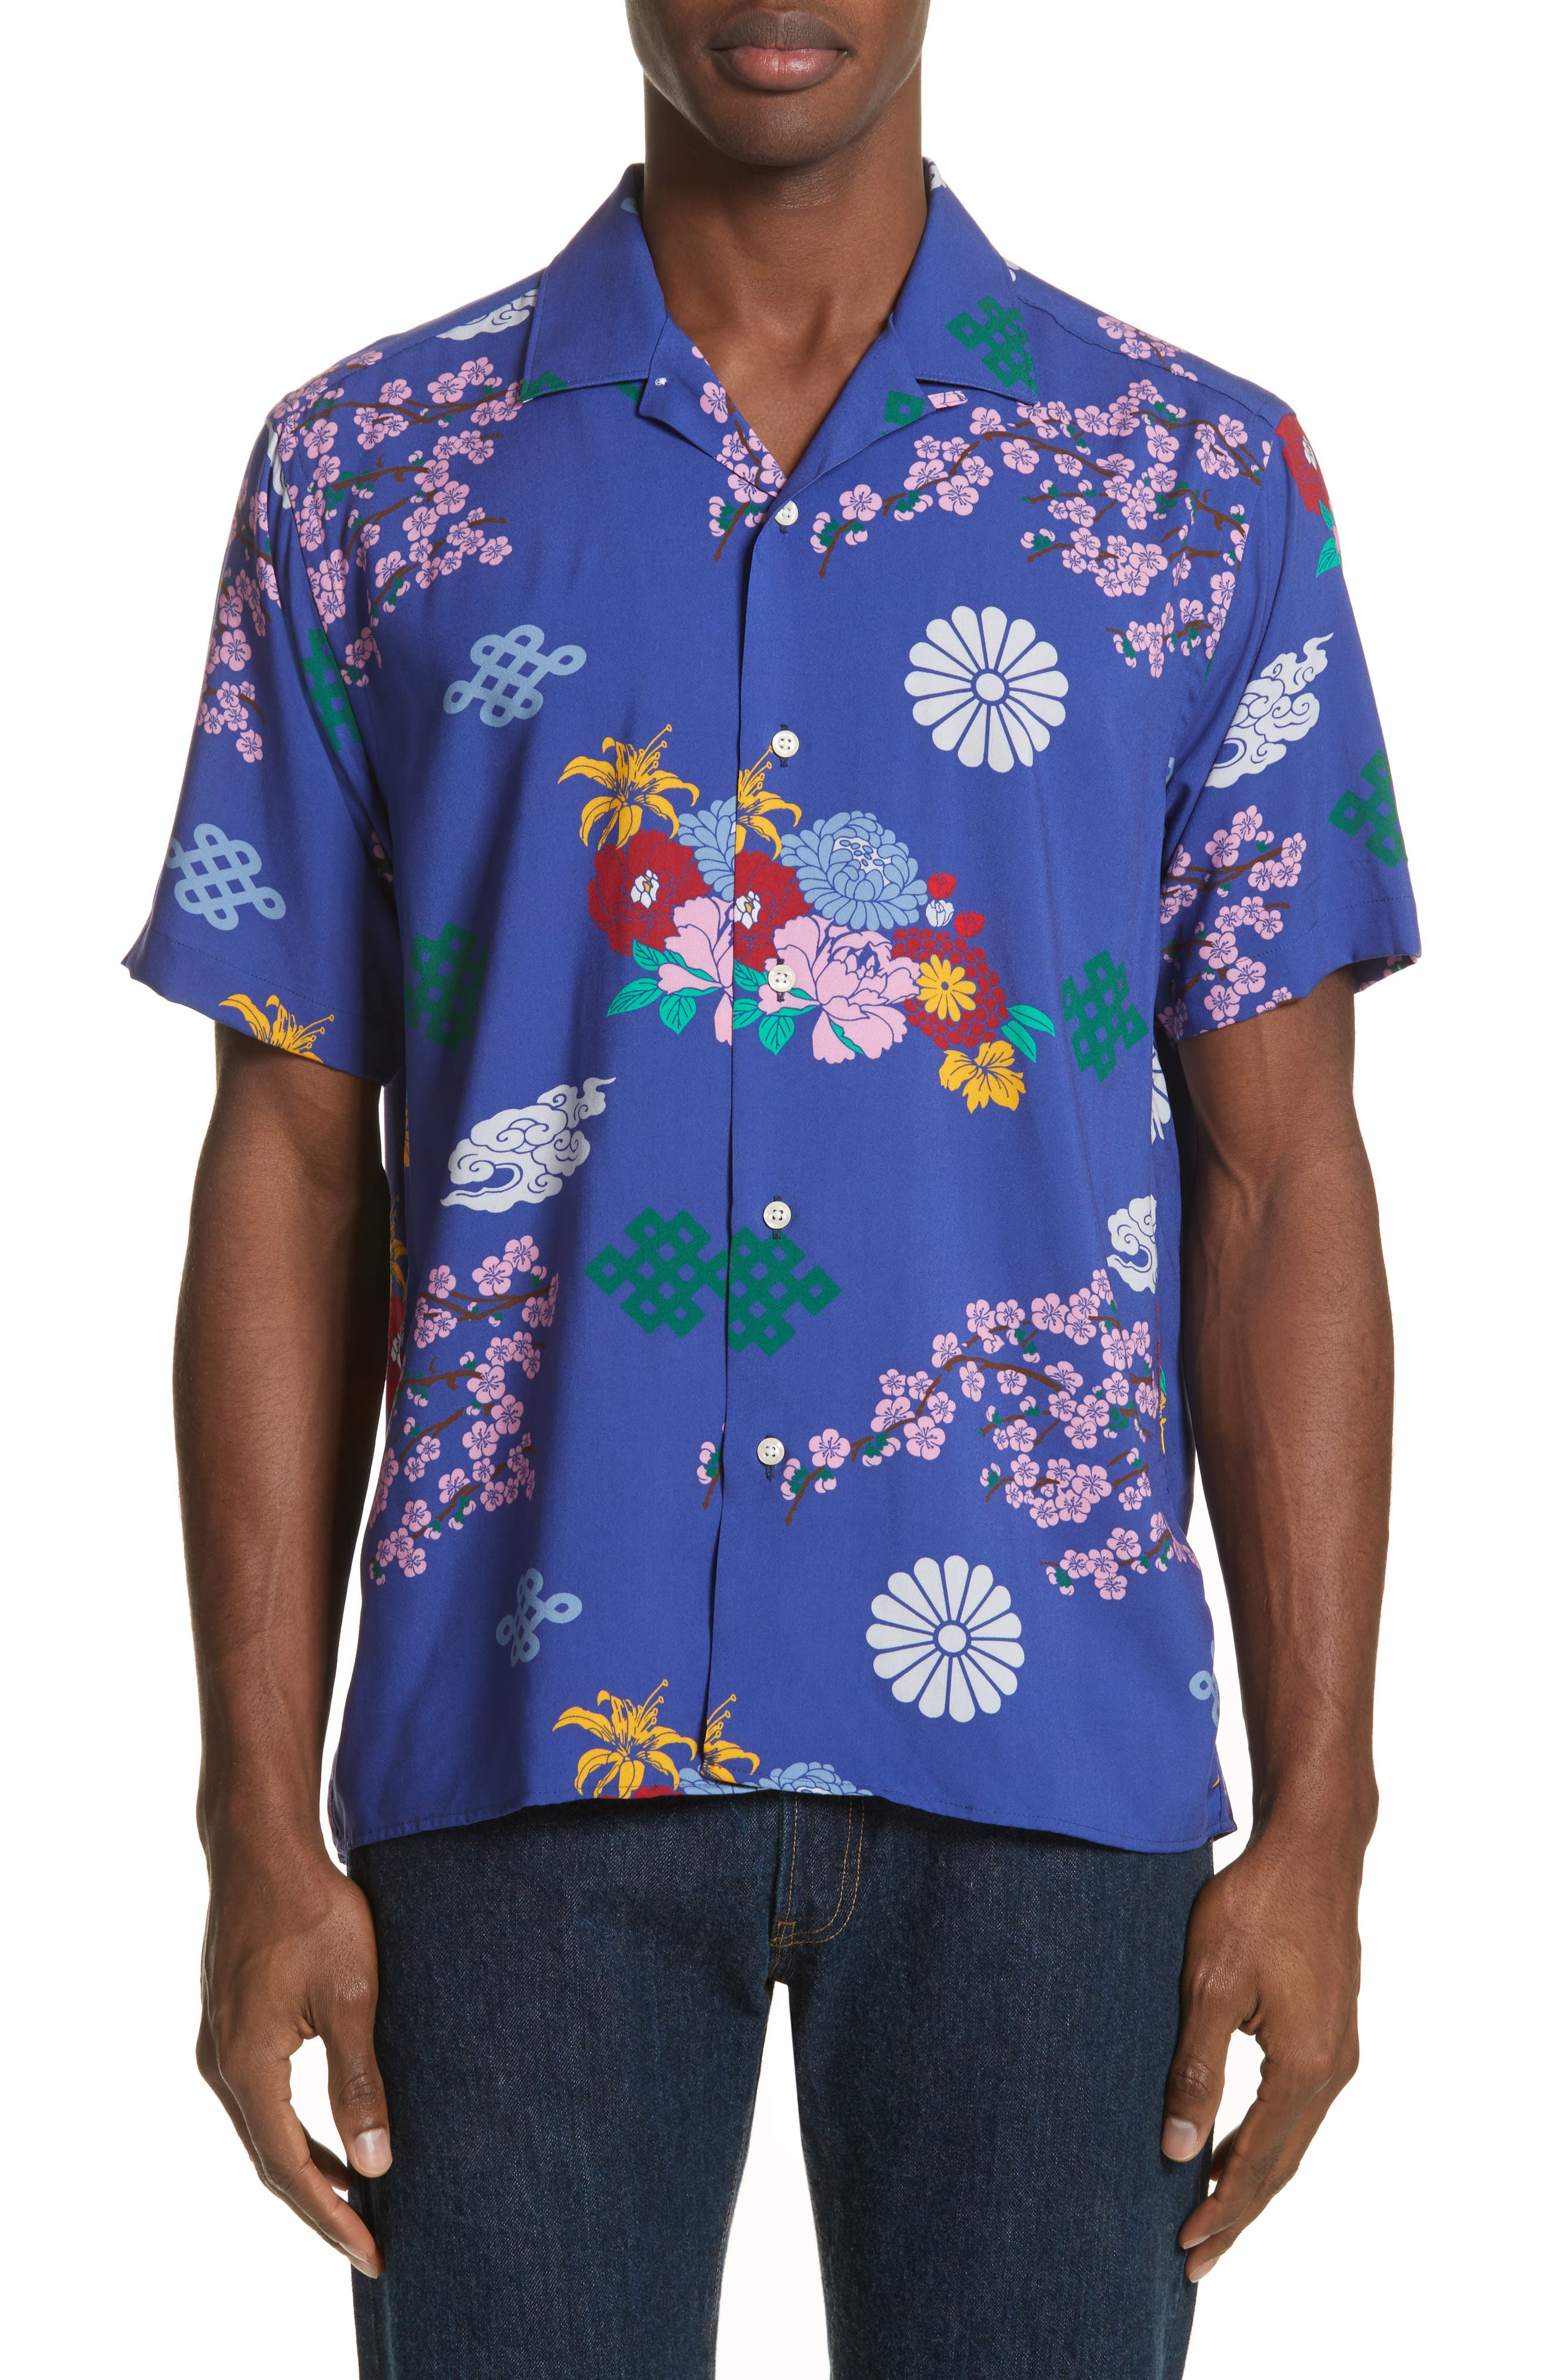 x The North Face Men's Floral Print Camp Shirt,                             Alternate thumbnail 2, color,                             Blue Ground